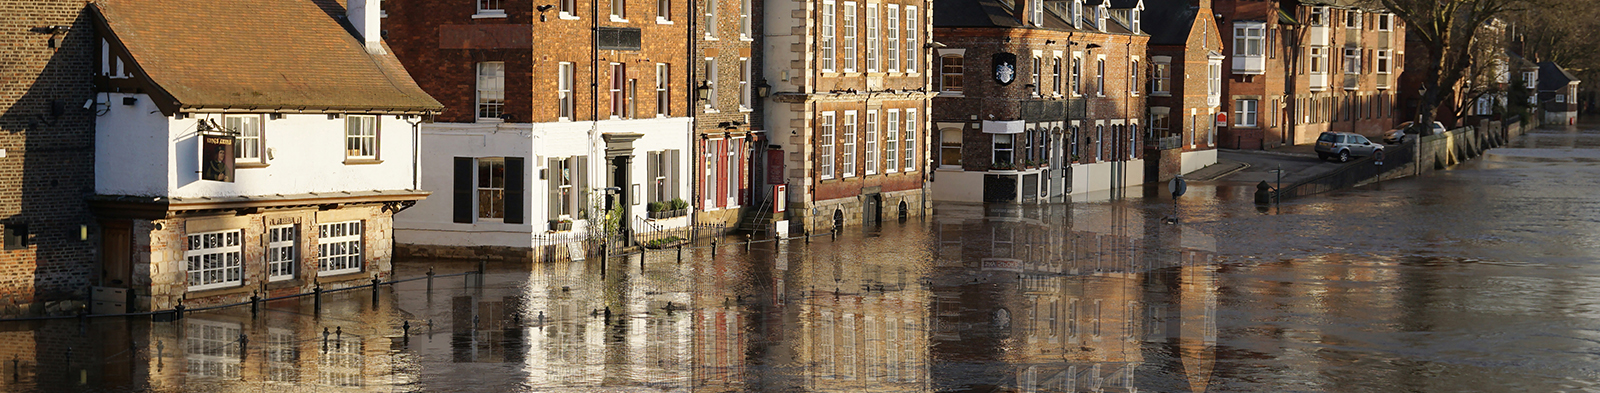 A flooded town centre